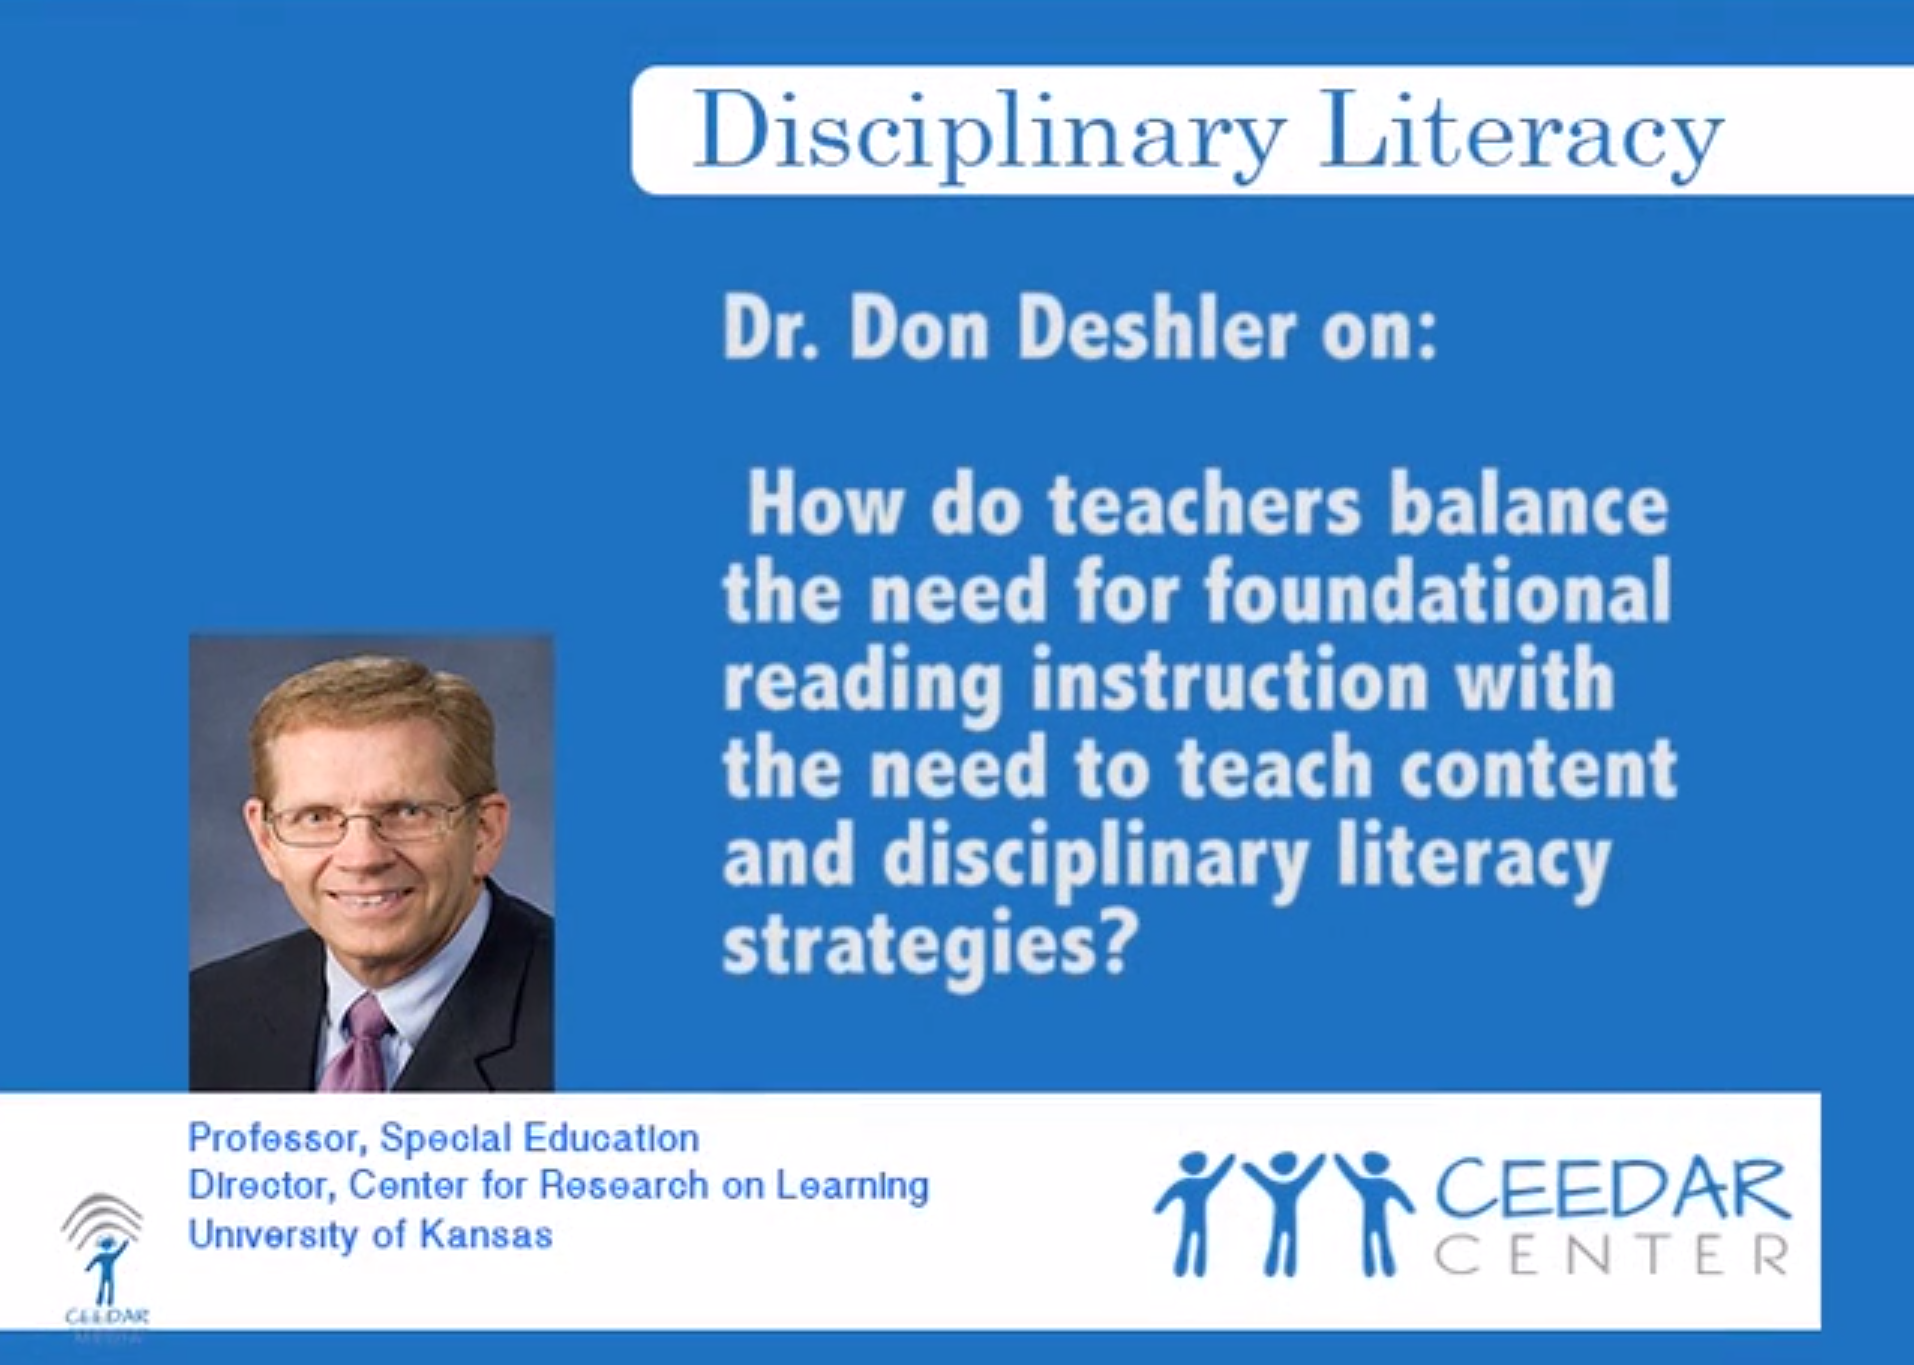 Dr. Don Deshler on Disciplinary Literacy Strategies